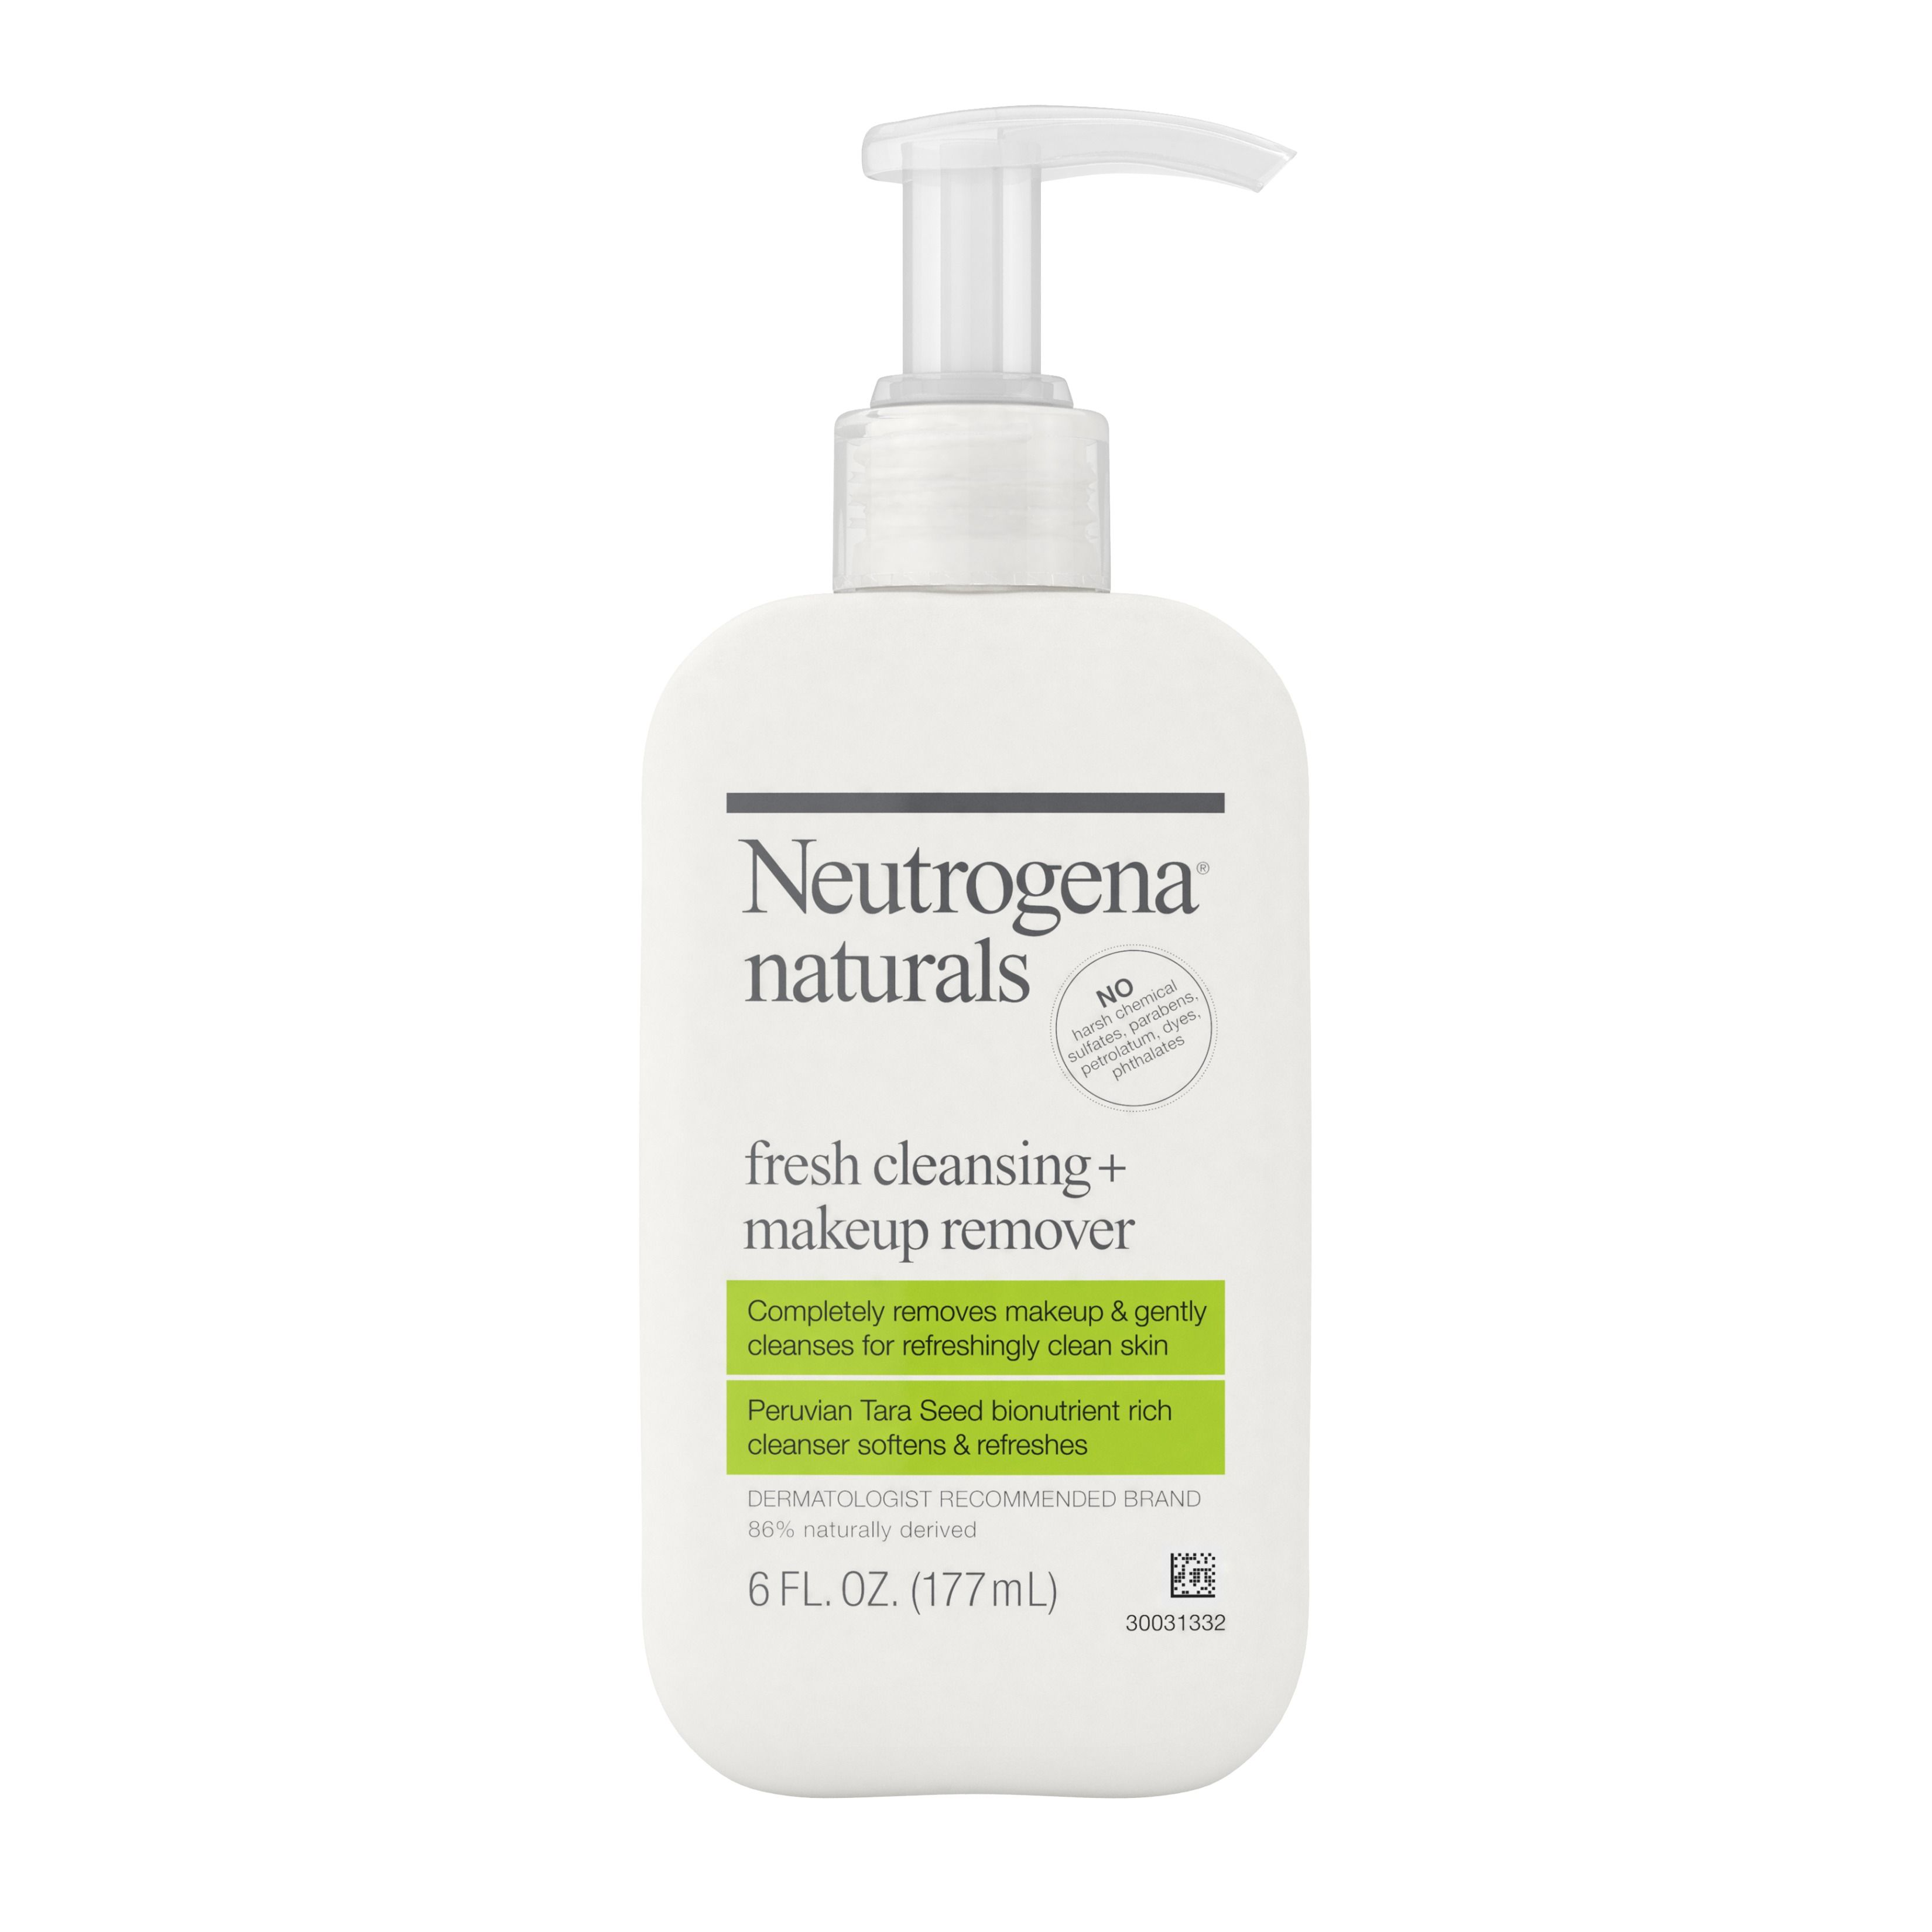 Neutrogena Naturals Liquid Facial Cleanser, All Skin Types